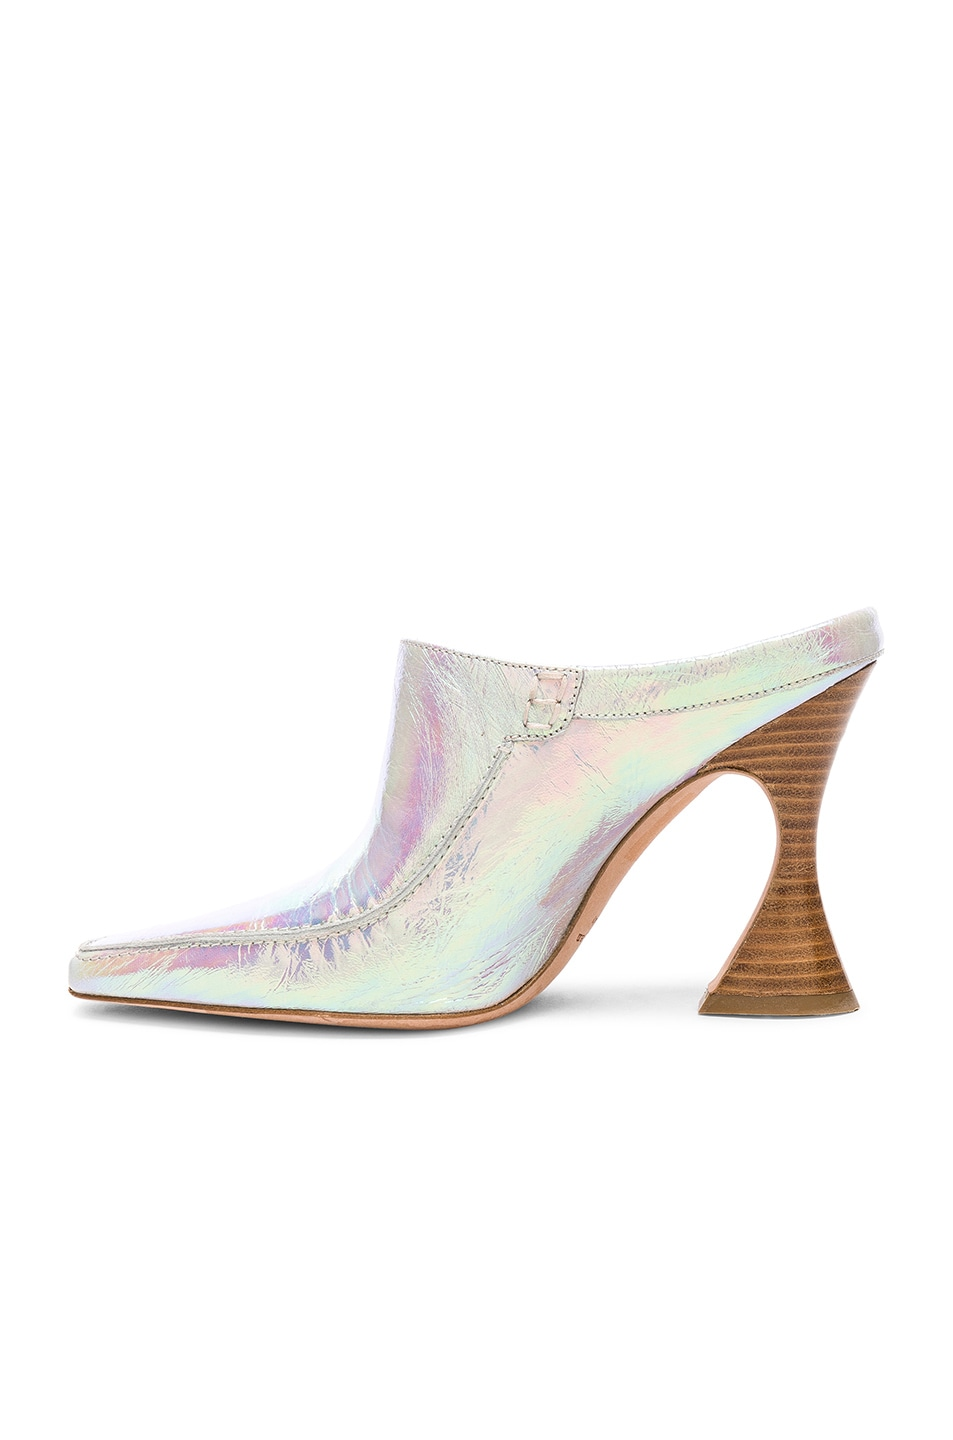 Image 5 of Sies Marjan Dena Holographic Loafer in Multicolored